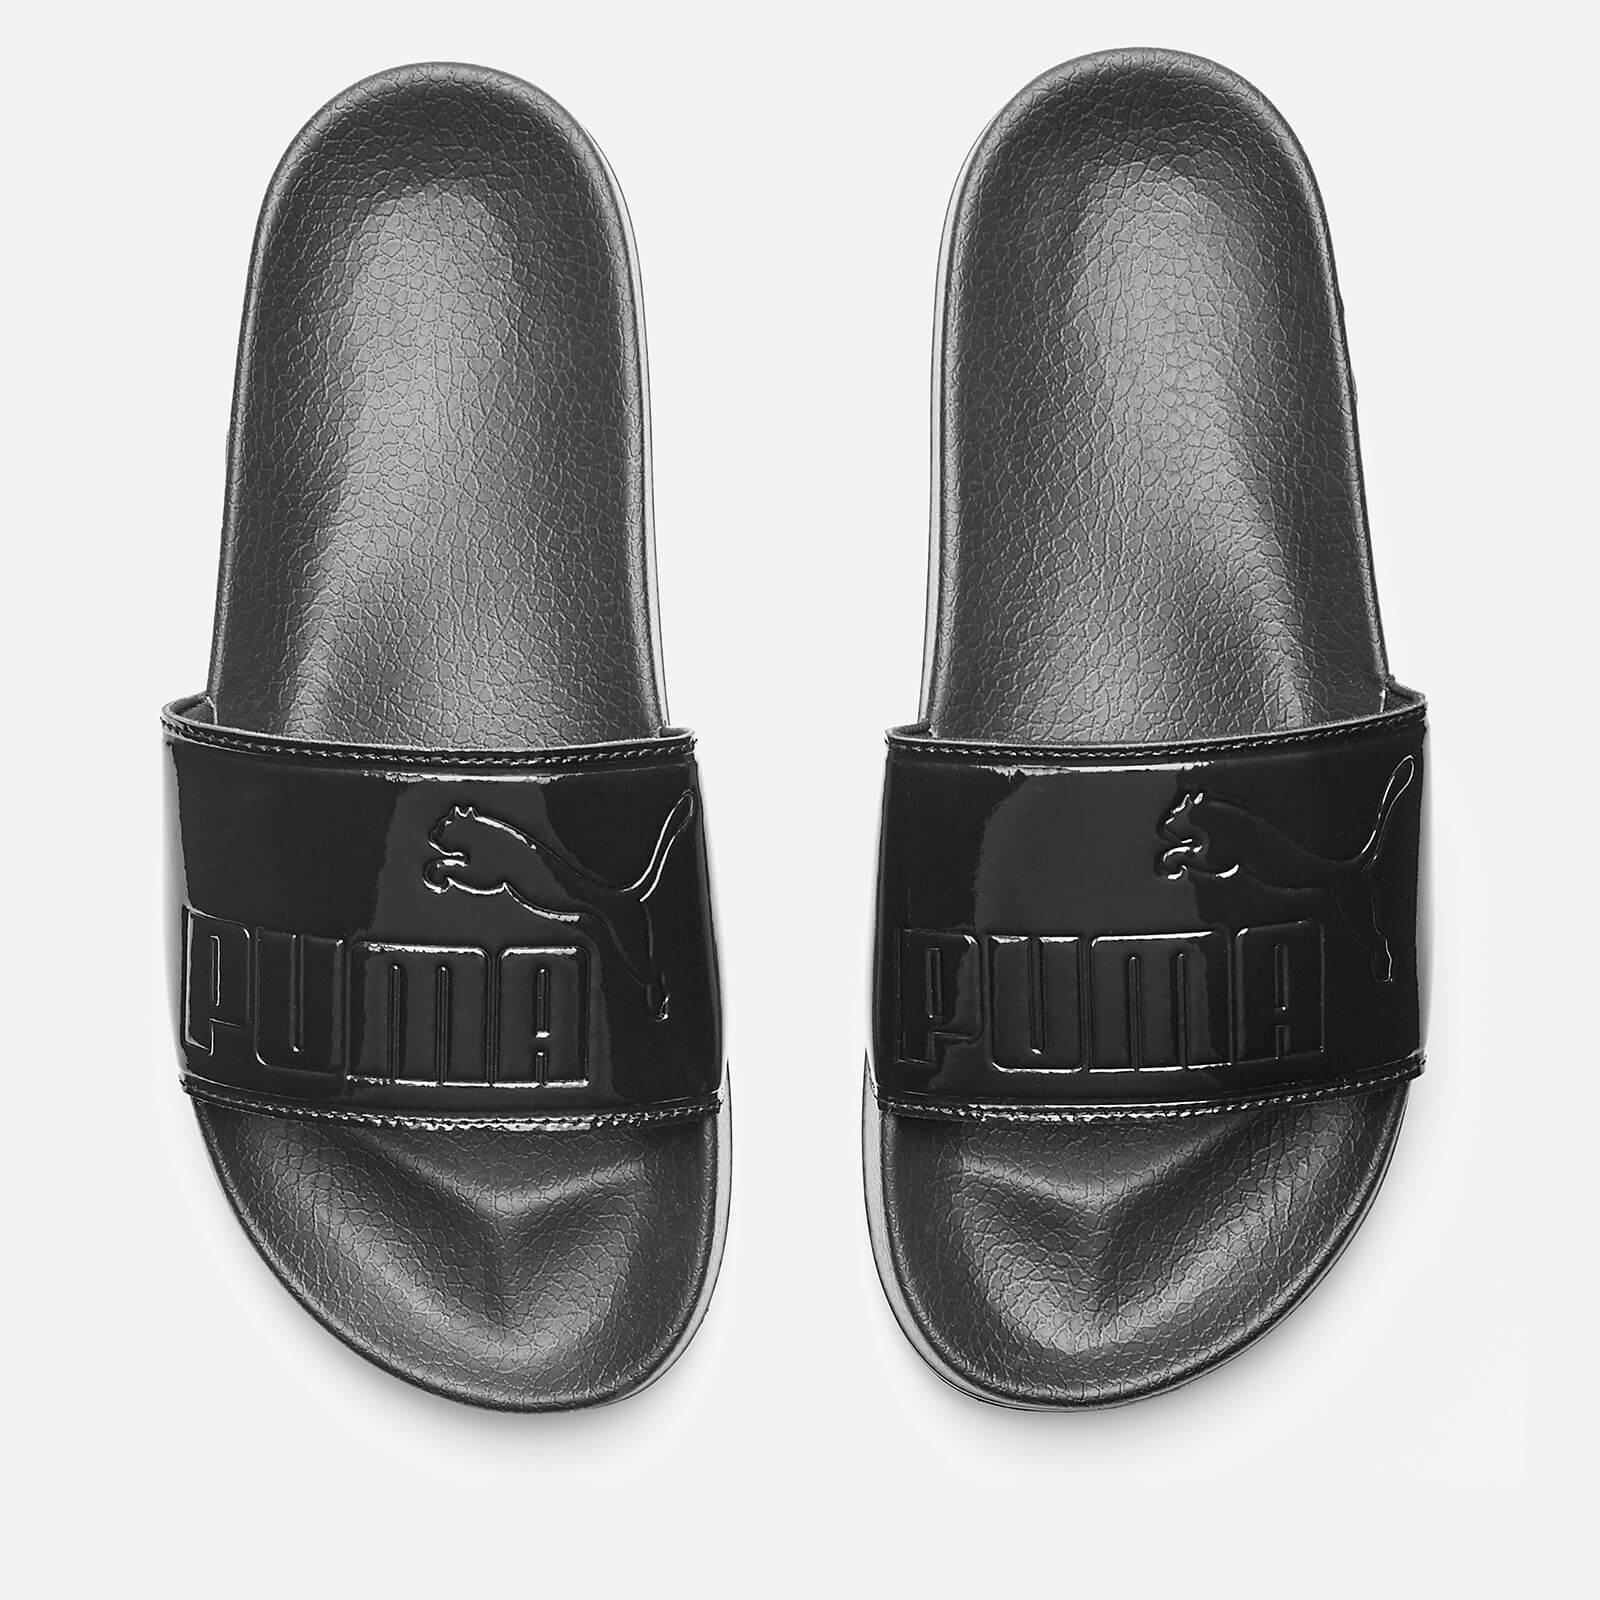 f48e7ceddfe3 Puma Women s Leadcat Patent Slide Sandals - Puma Black Womens Accessories